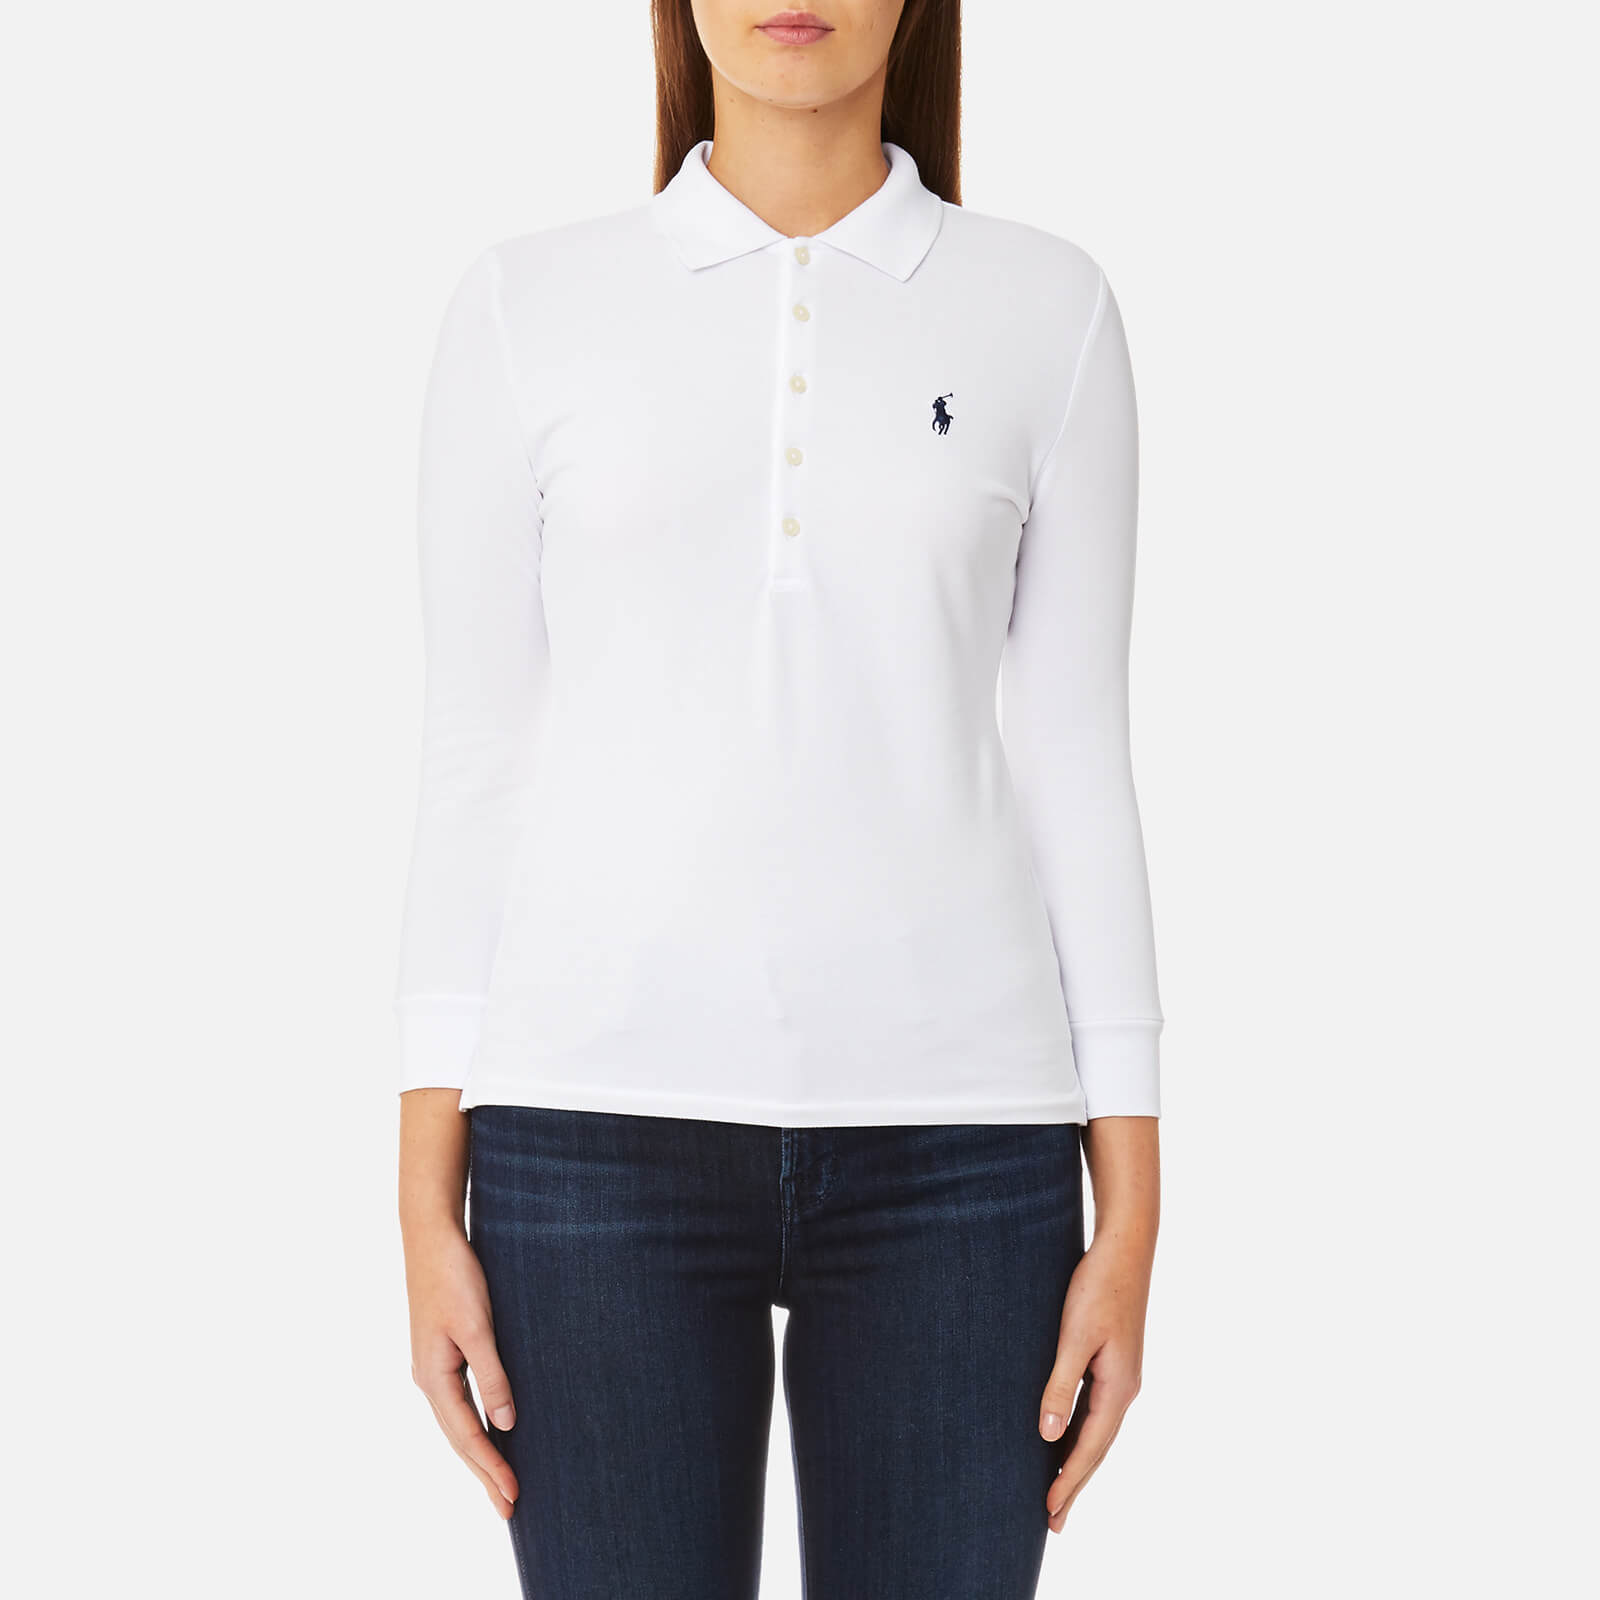 937530c4219b Polo Ralph Lauren Women's 3/4 Length Julie Long Sleeve Top - White - Free  UK Delivery over £50